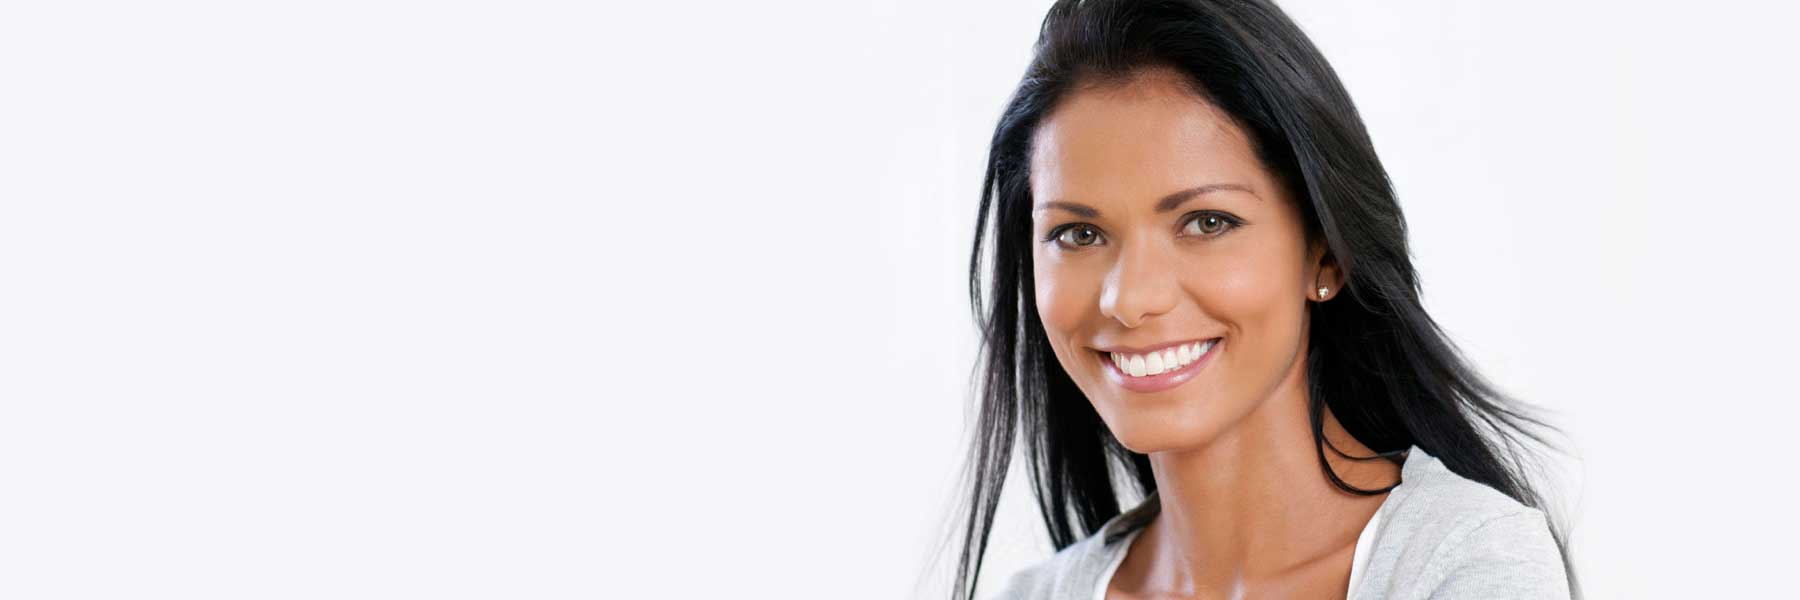 Invisalign Orthodontics | Dentist